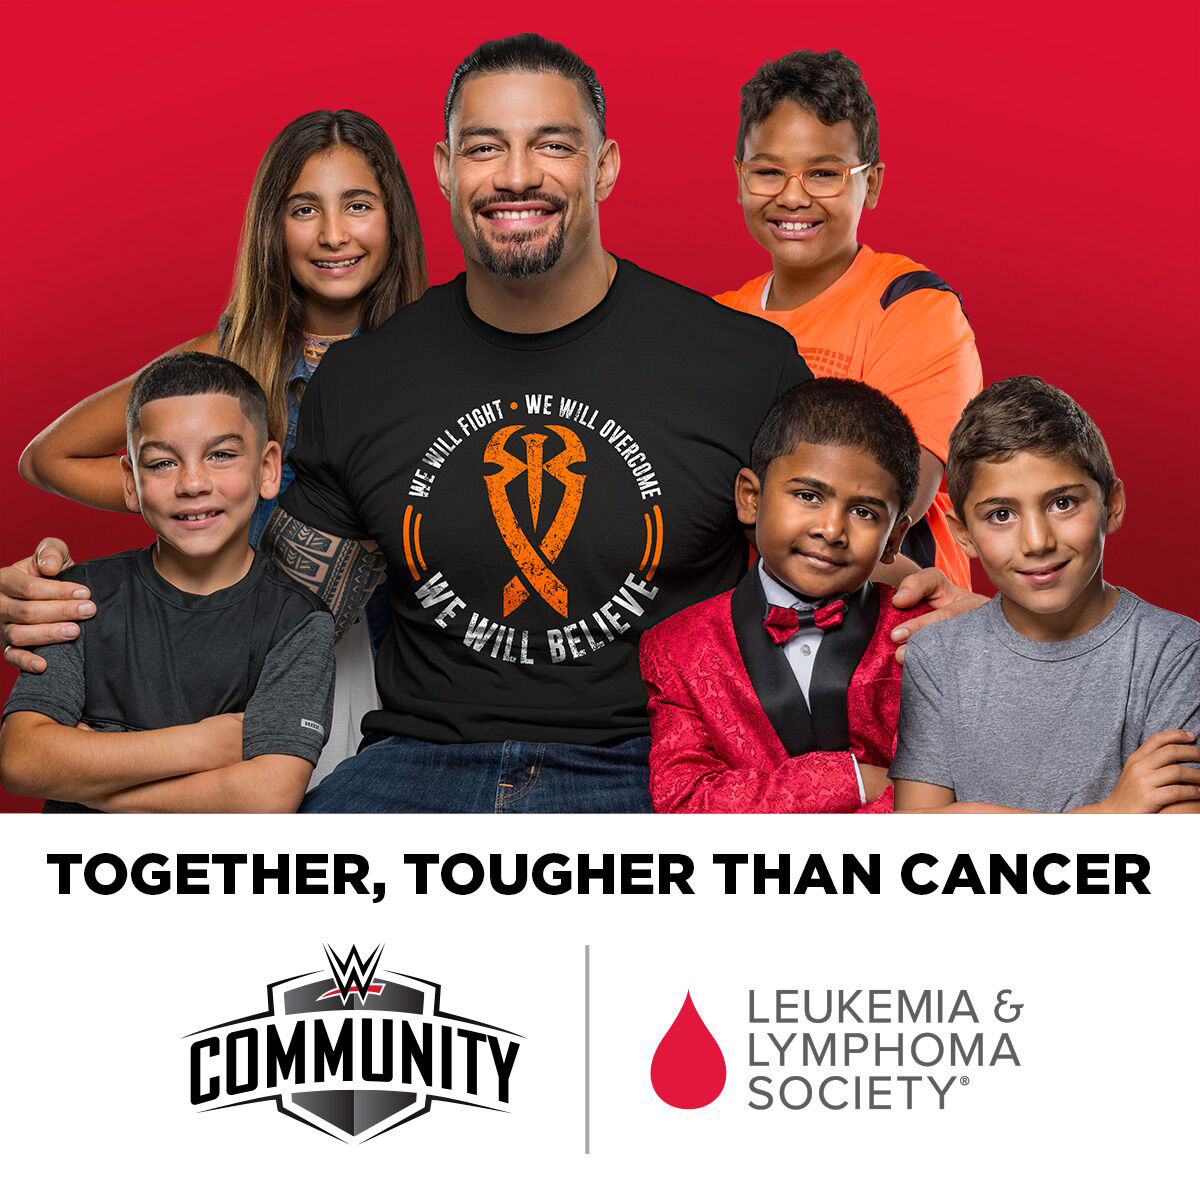 """""""I know how tough it is to deal with cancer and I want to show people that even someone like me can be knocked down, but with the right treatment and support, we can get back up to fight another day."""" – Roman Reigns, WWE Superstar and chronic myeloid leukemia survivor"""